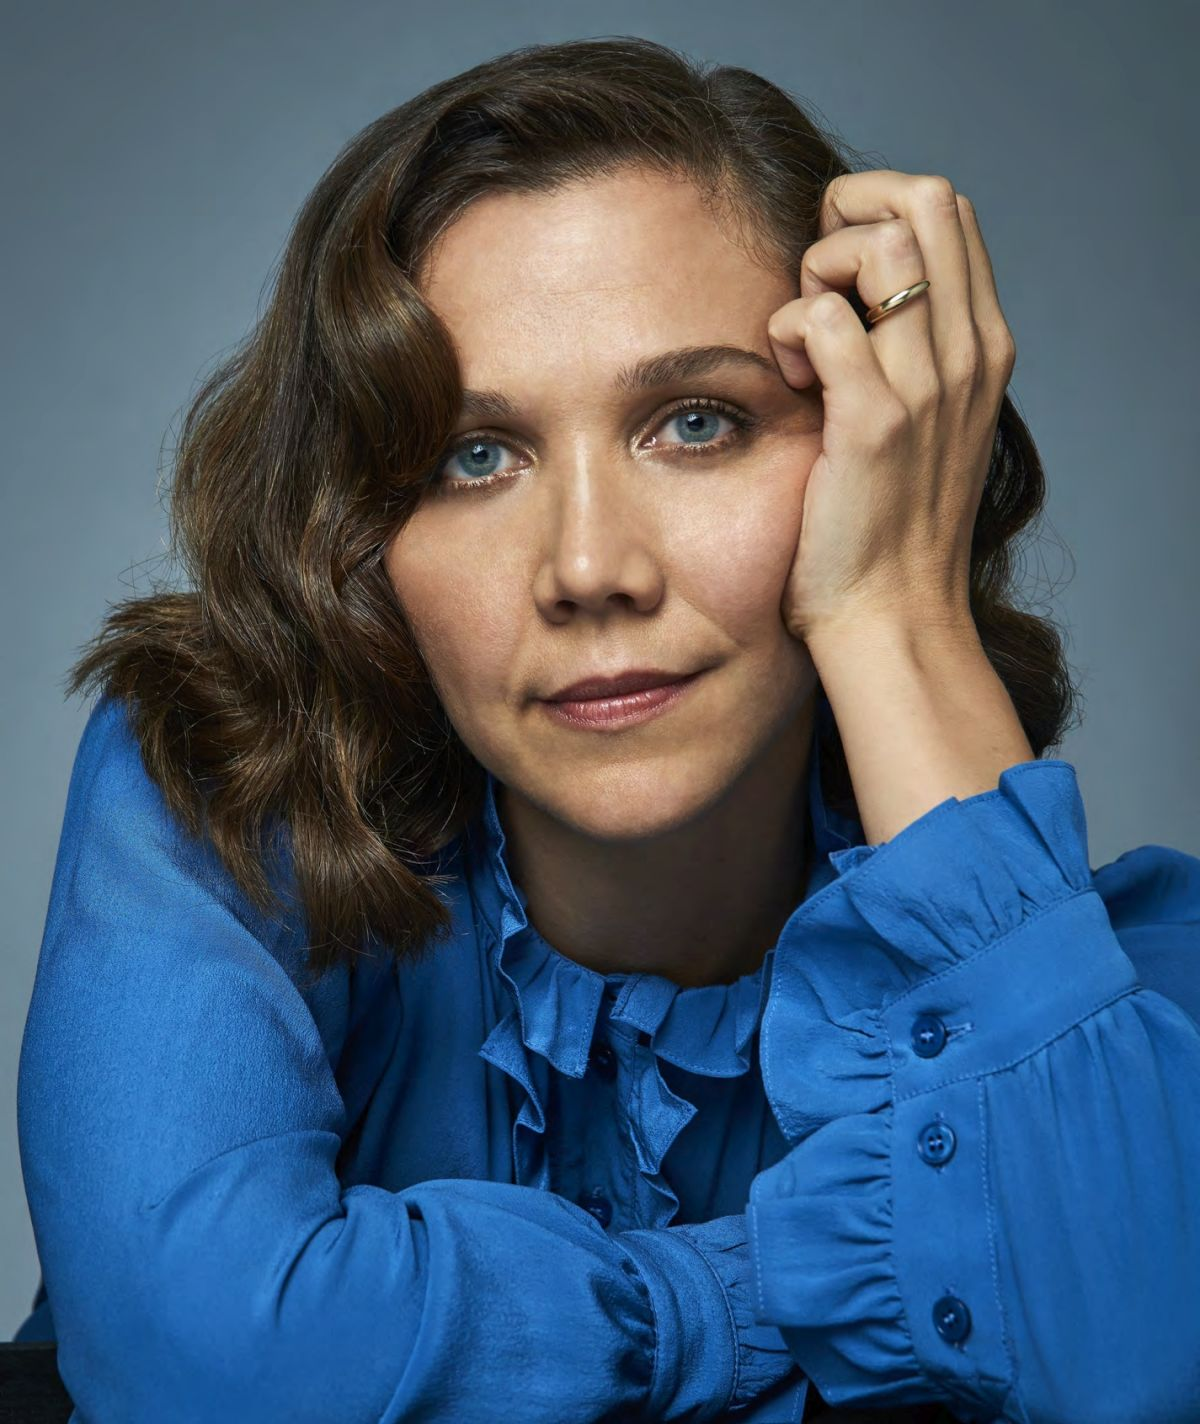 MAGGIE GYLLENHAAL for Backstage Magazine, September 2017